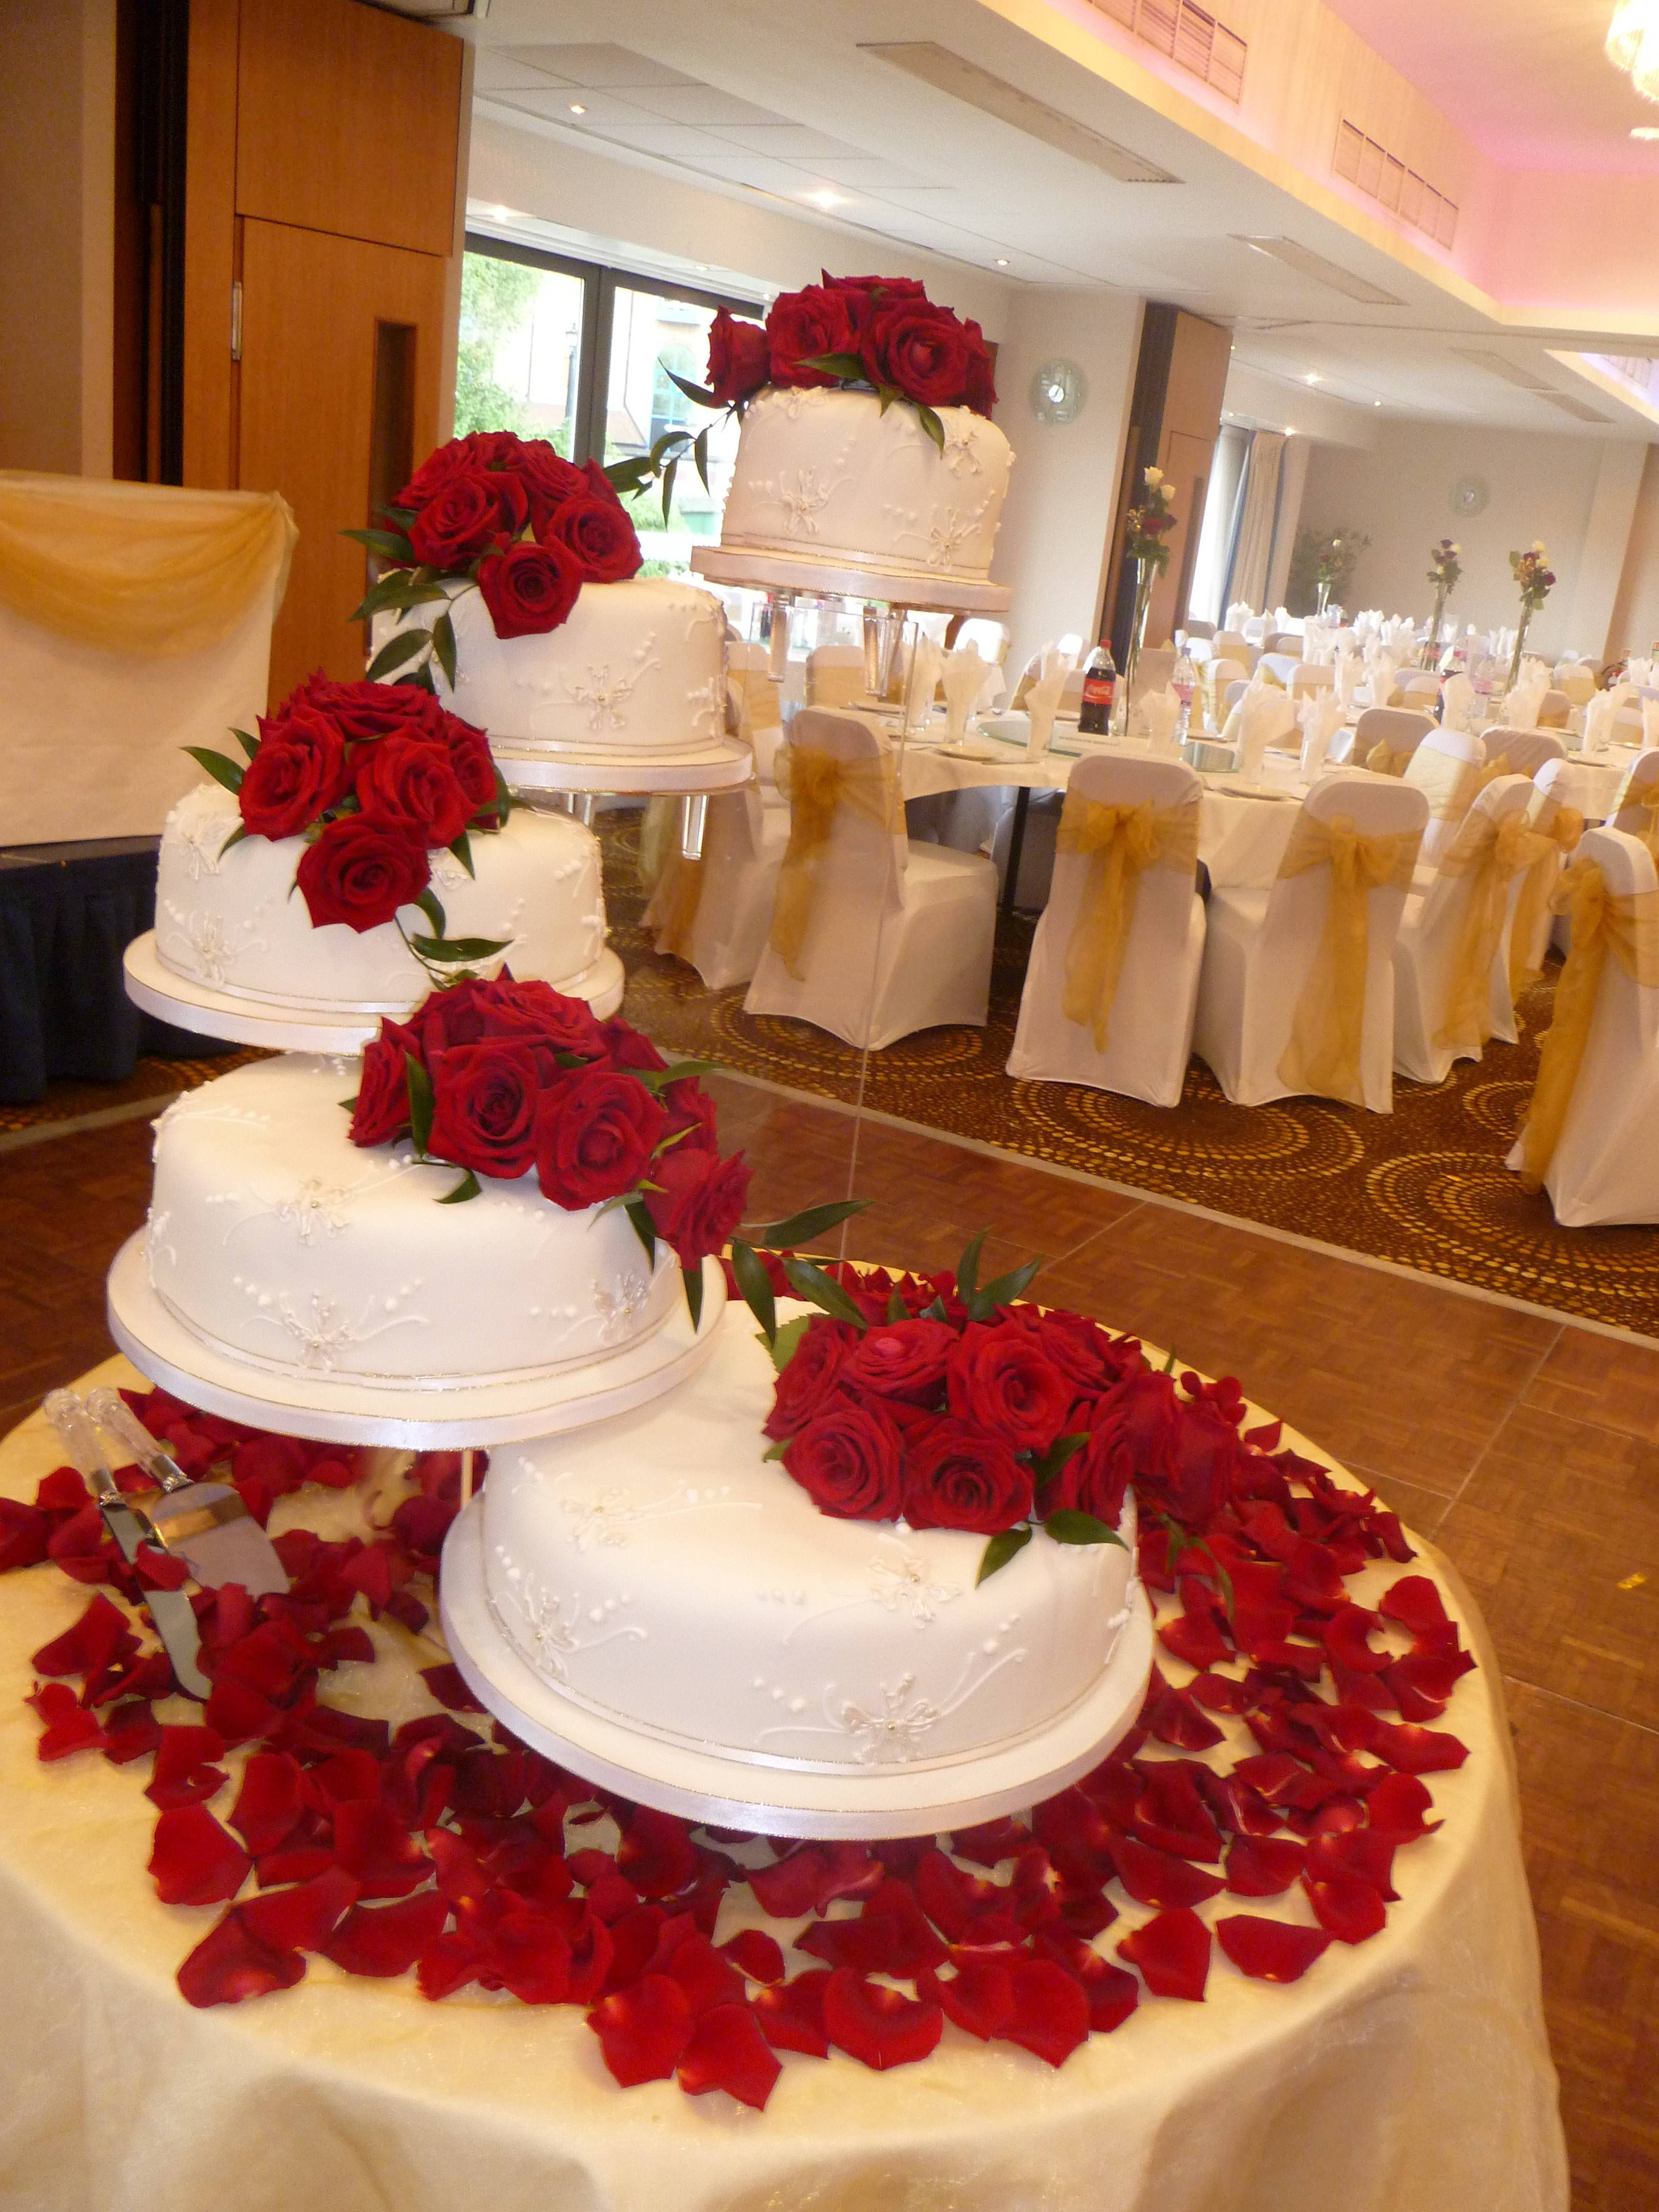 stair stepped wedding cakes a luxury of red and white rose flowers wedding cake designs ideas